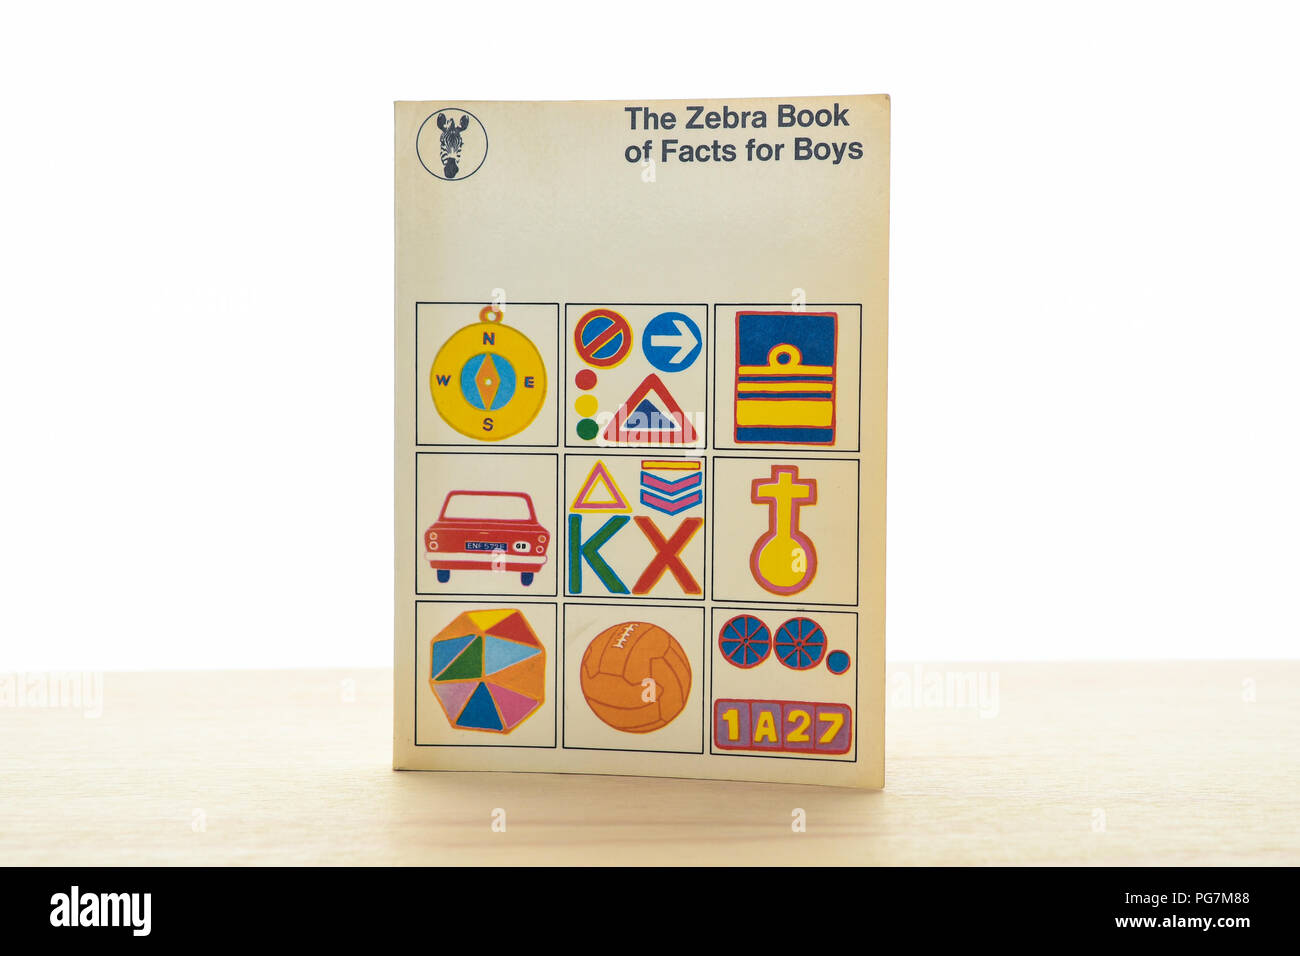 The Zebra Book of Facts for Boys 1972 revised printing - first published 1968 - Stock Image